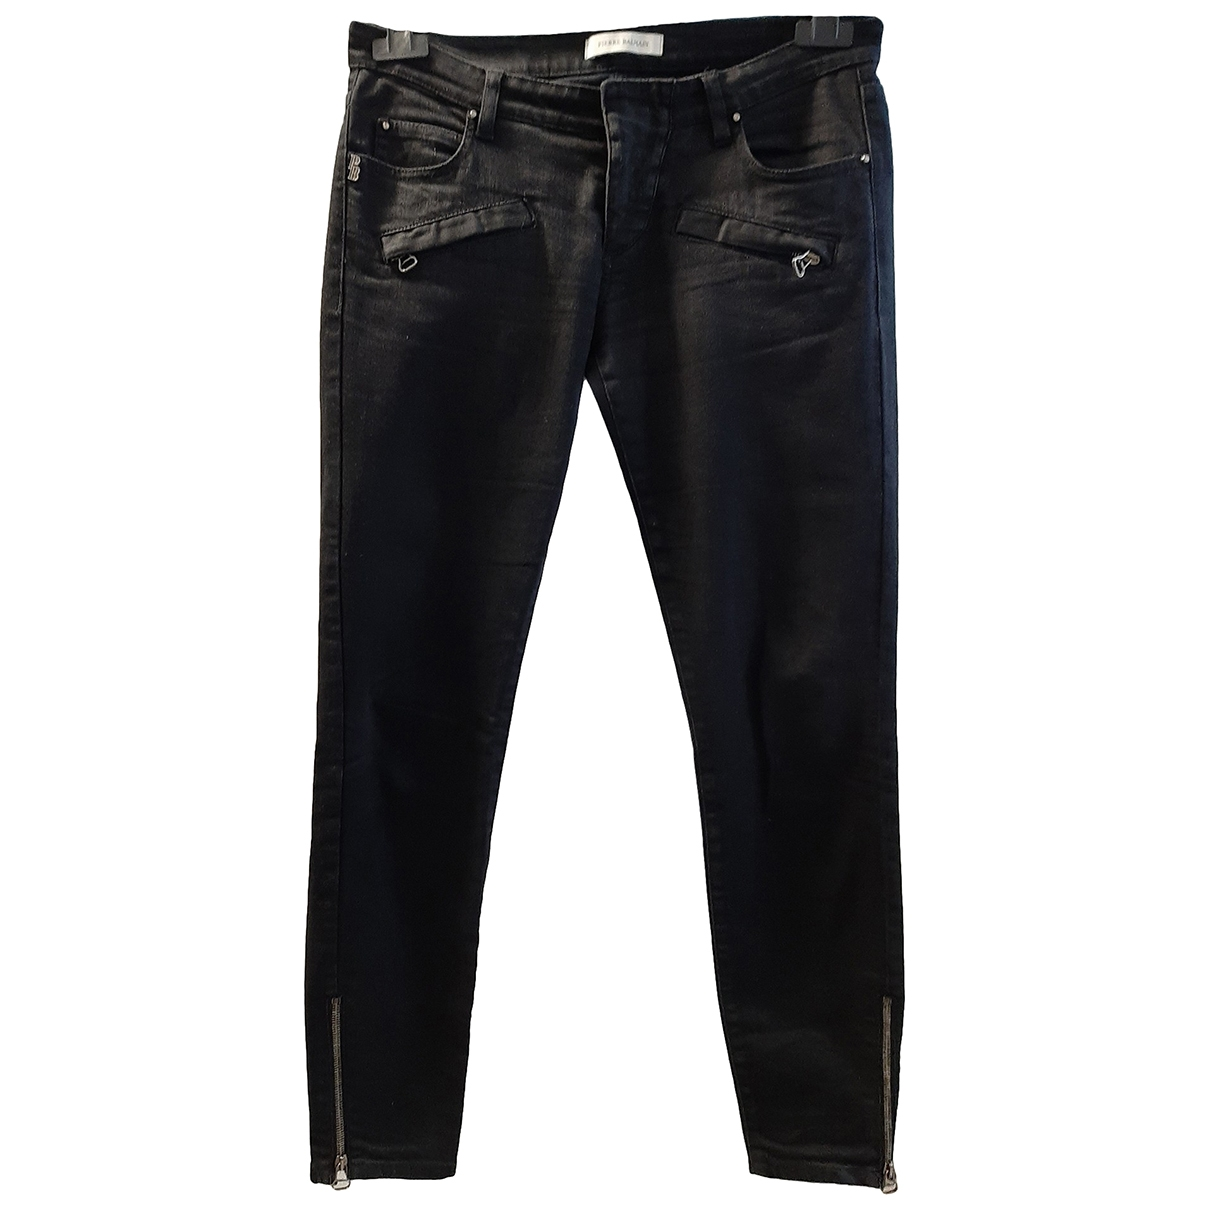 Pierre Balmain \N Black Cotton - elasthane Jeans for Women 29 US